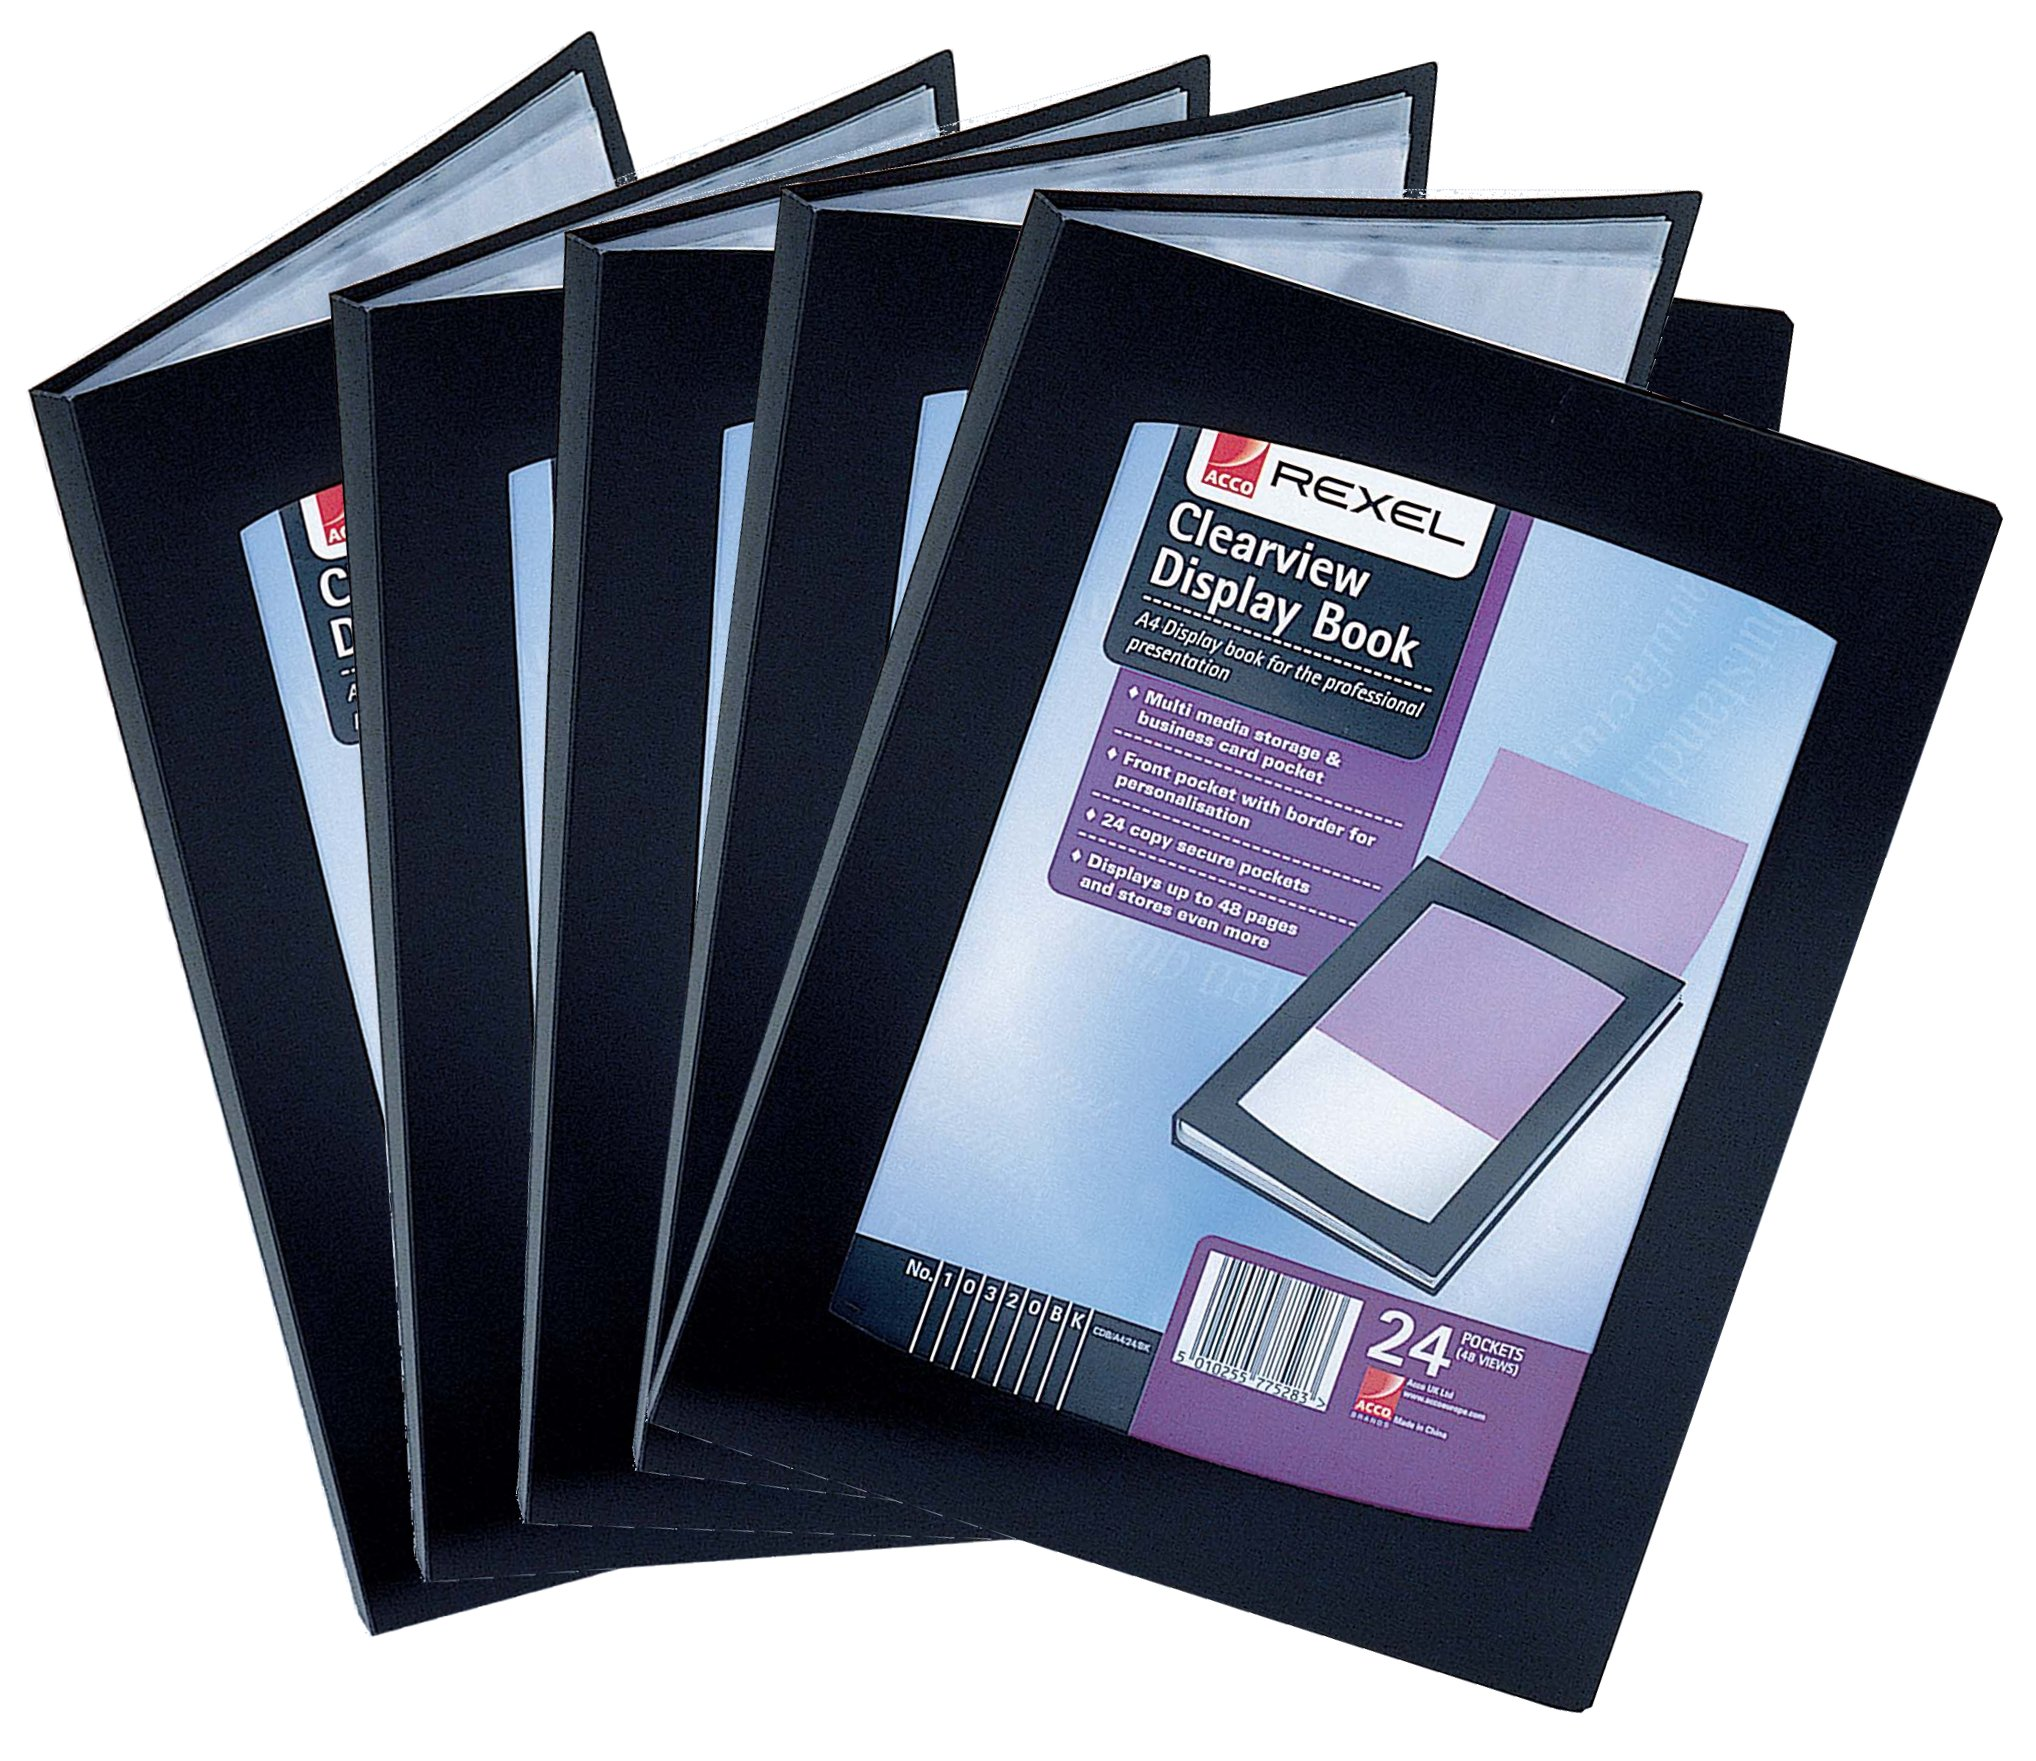 Rexel A4 24 Pocket Clearview Display Books - Black (Pack of 5) by OfficeMarket